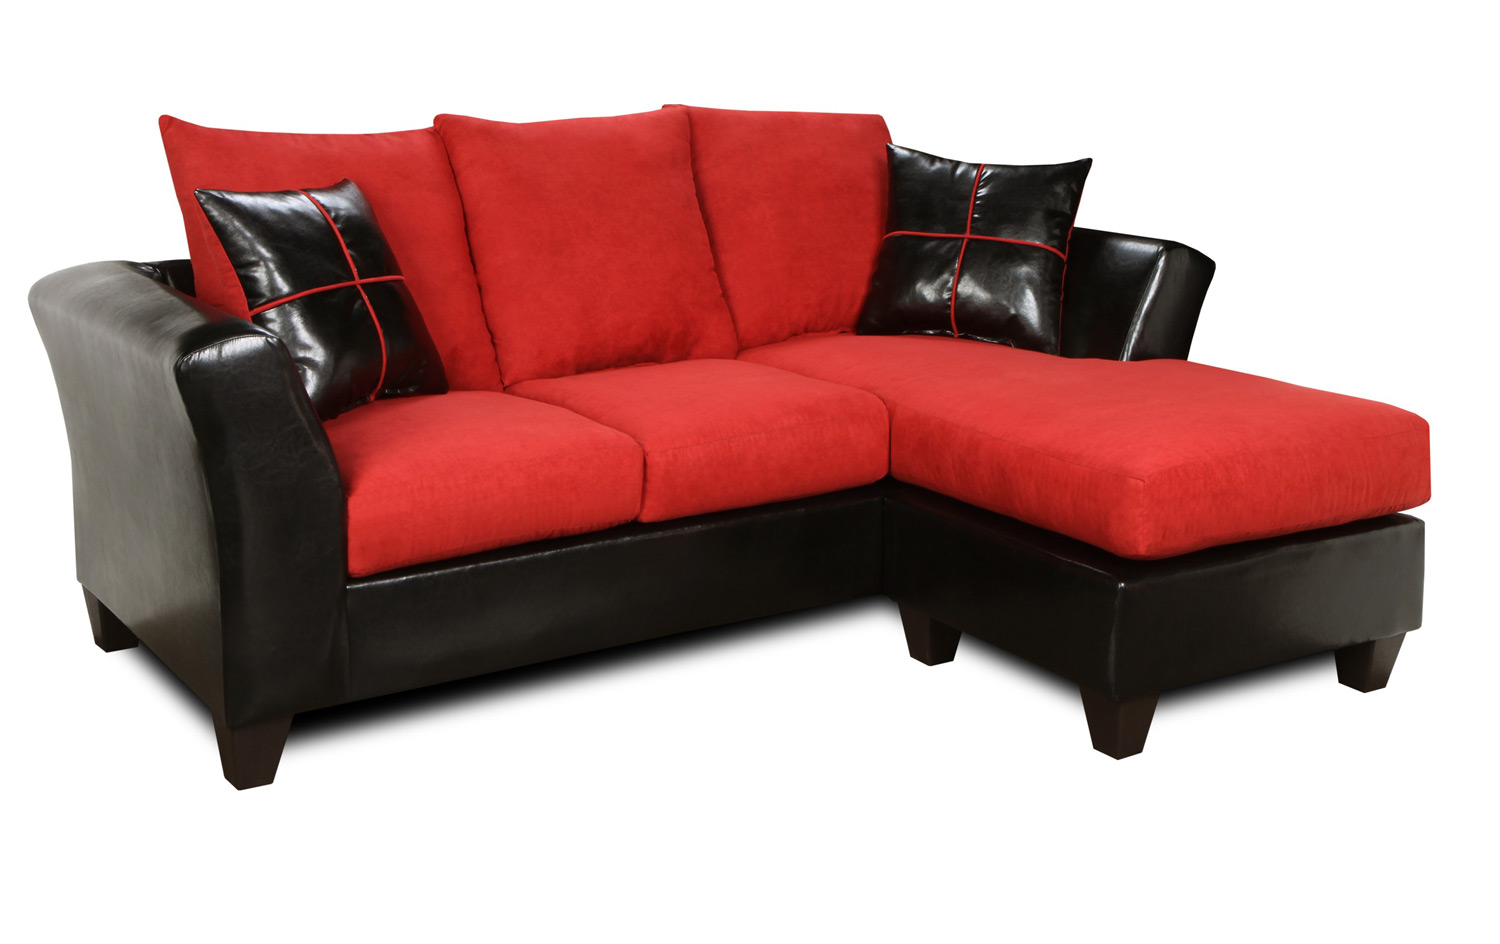 Chelsea Home Peyton Sofa Chaise - Denver Black/Victory Cardinal